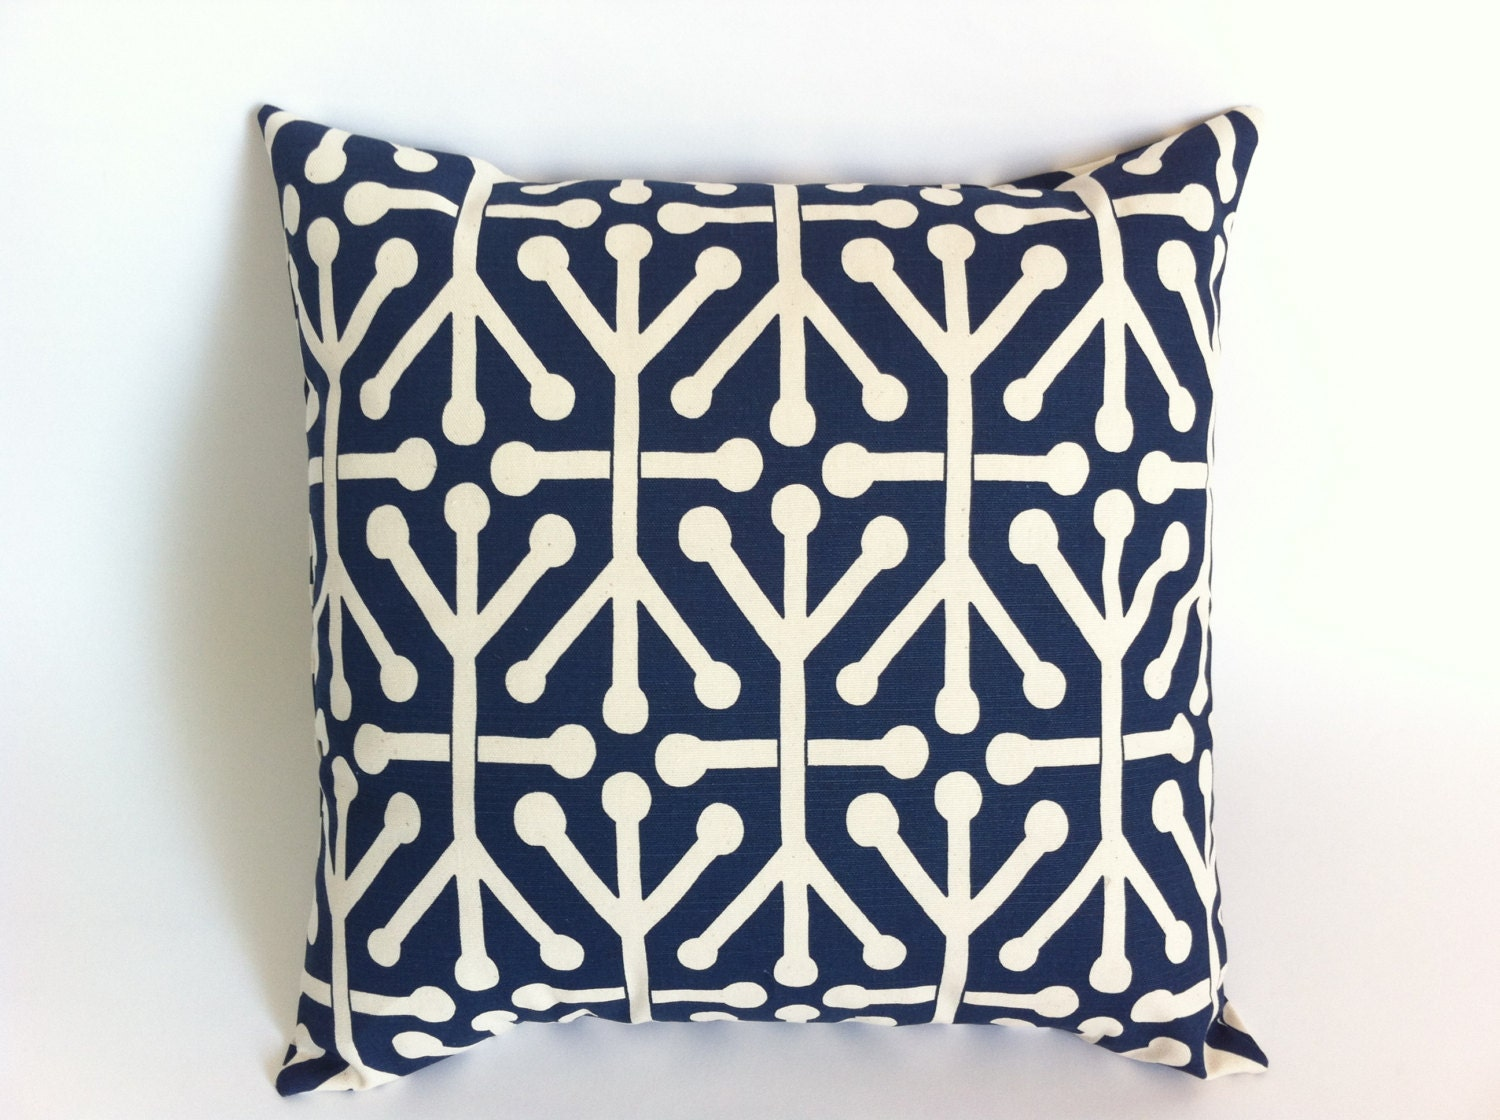 Throw Pillow Cover Pattern With Zipper : Two Navy Blue Decorative Throw Zipper Pillow Covers by Pillomatic